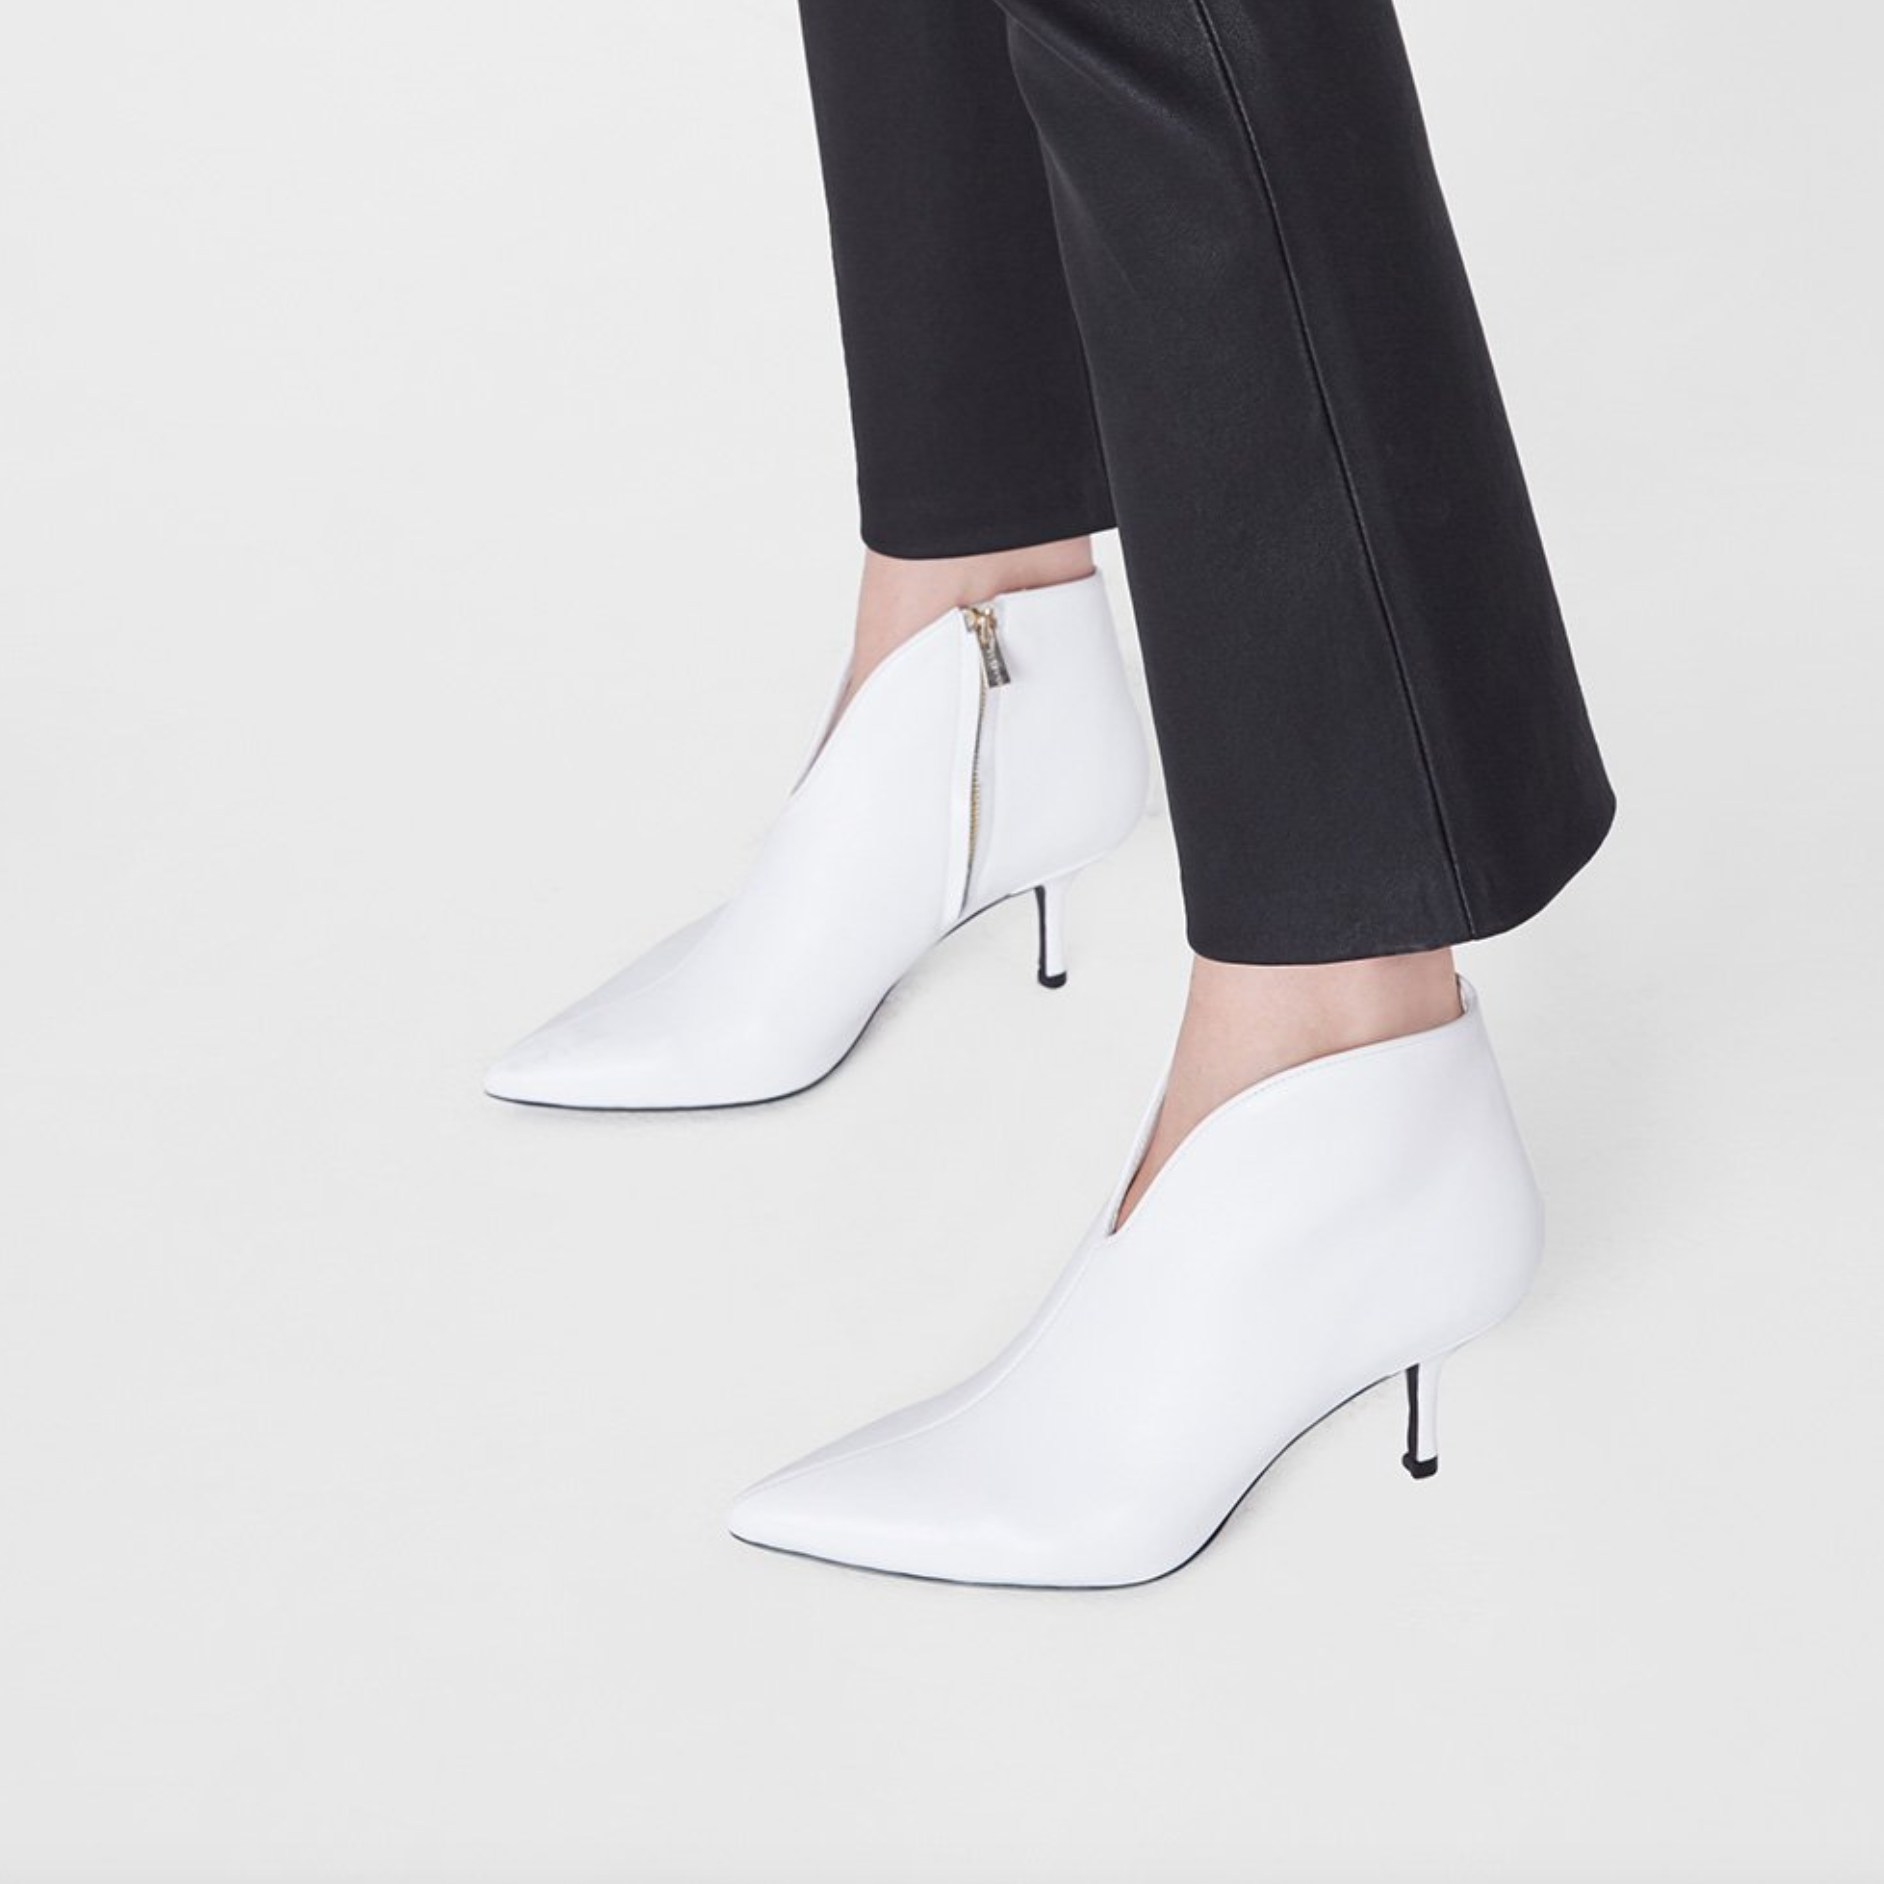 Buy Now: White Ankle Boots